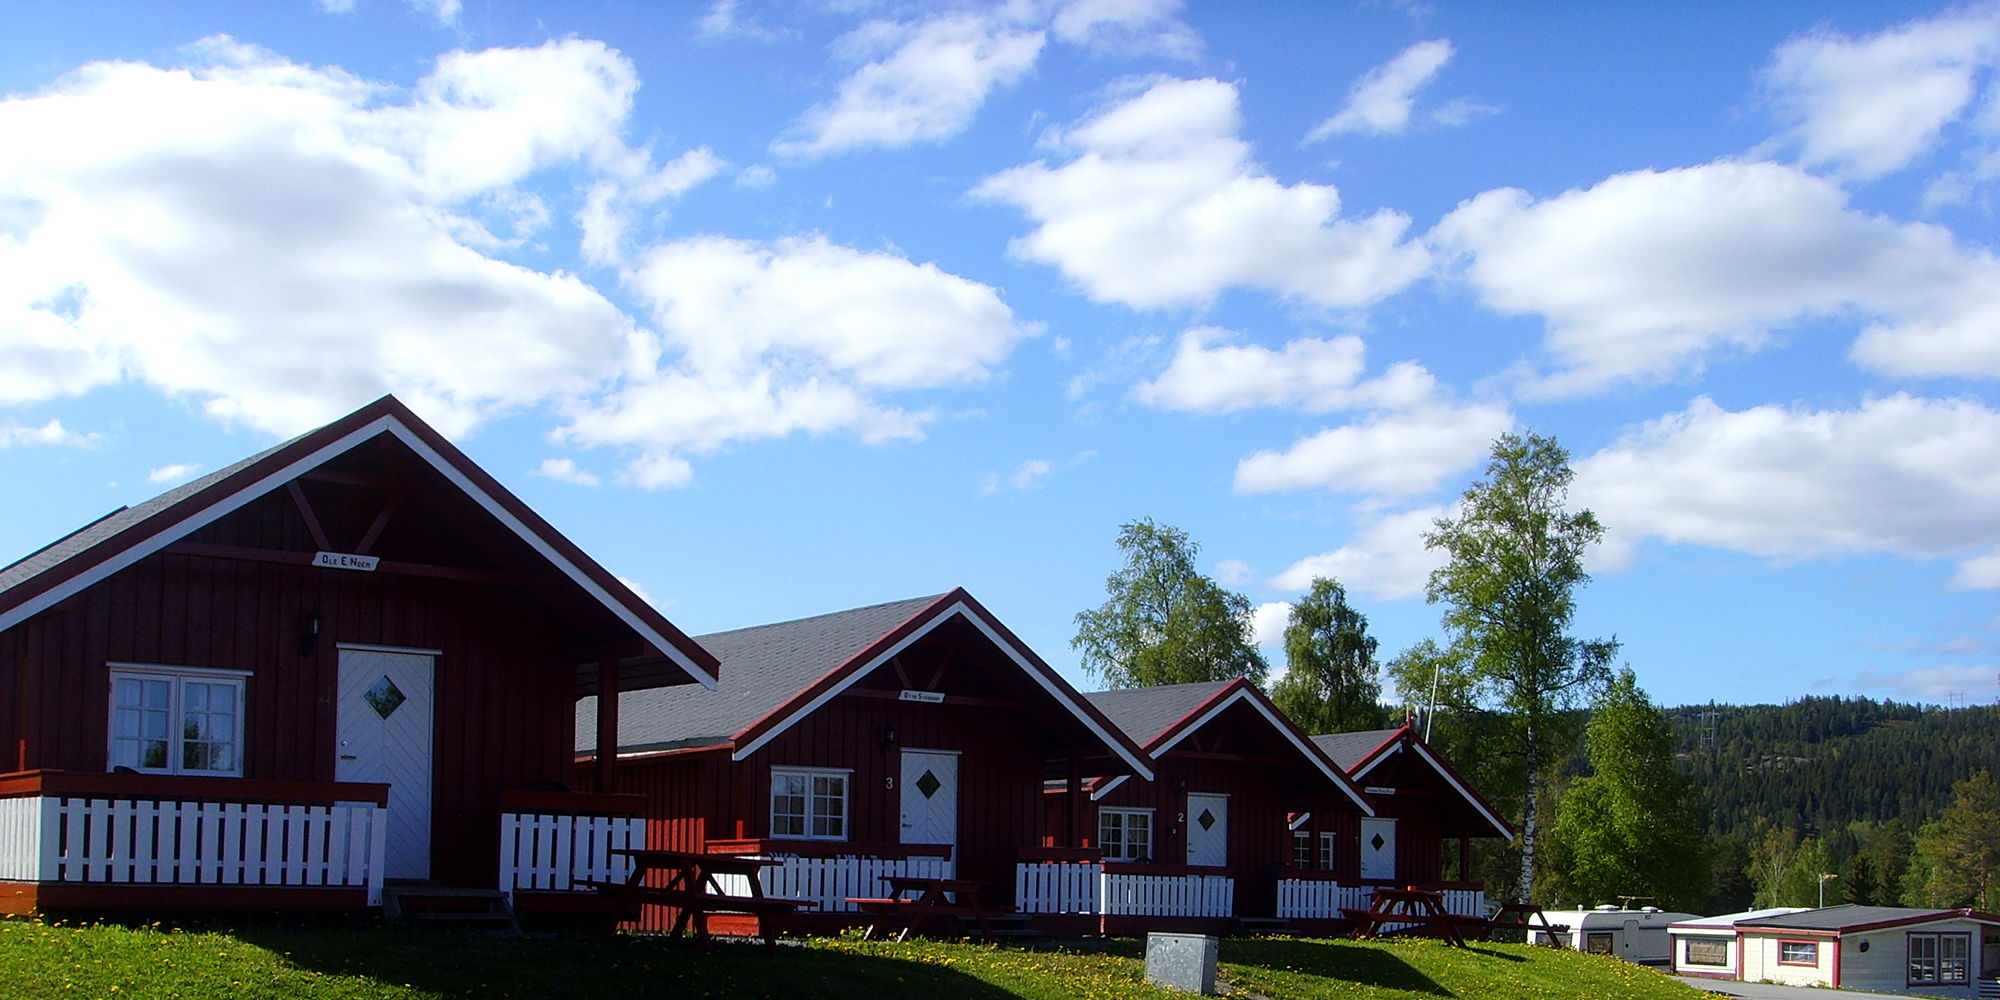 Cabins 1-5 at Føllingstua Camping. Copyright: Føllingstua